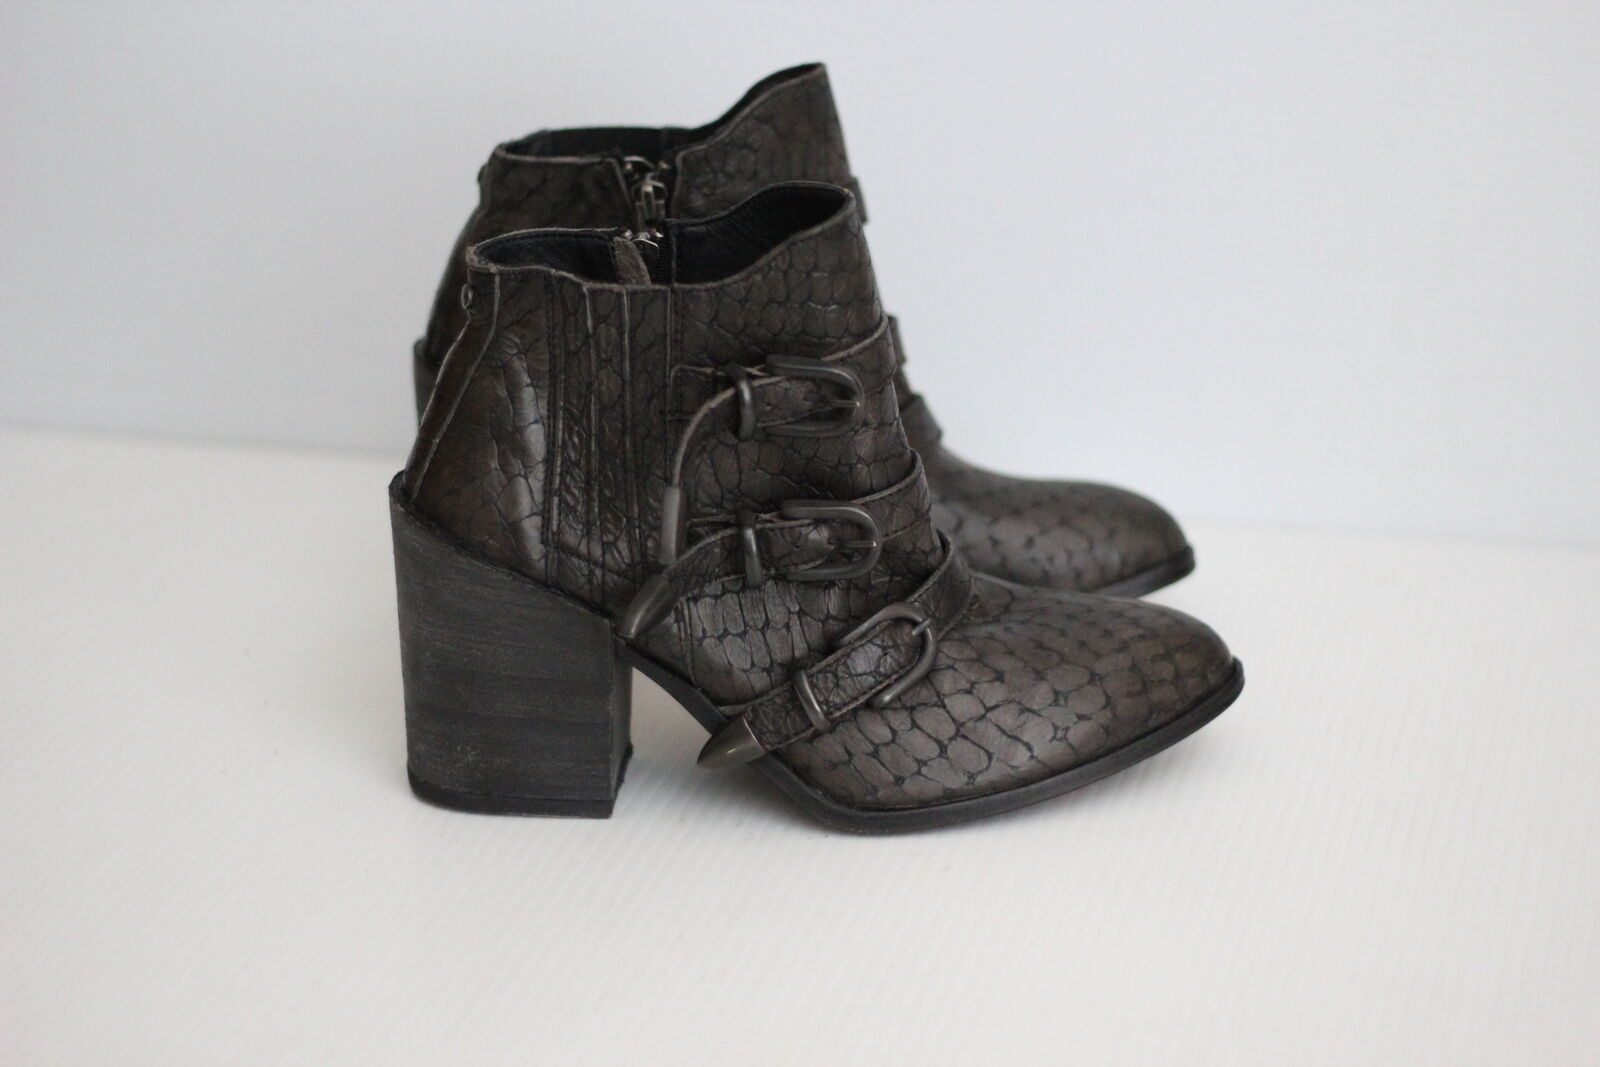 NEW Baske California 'Roscoe' Buckle Strap Bootie - Brown Textured - 8.5US (D13)